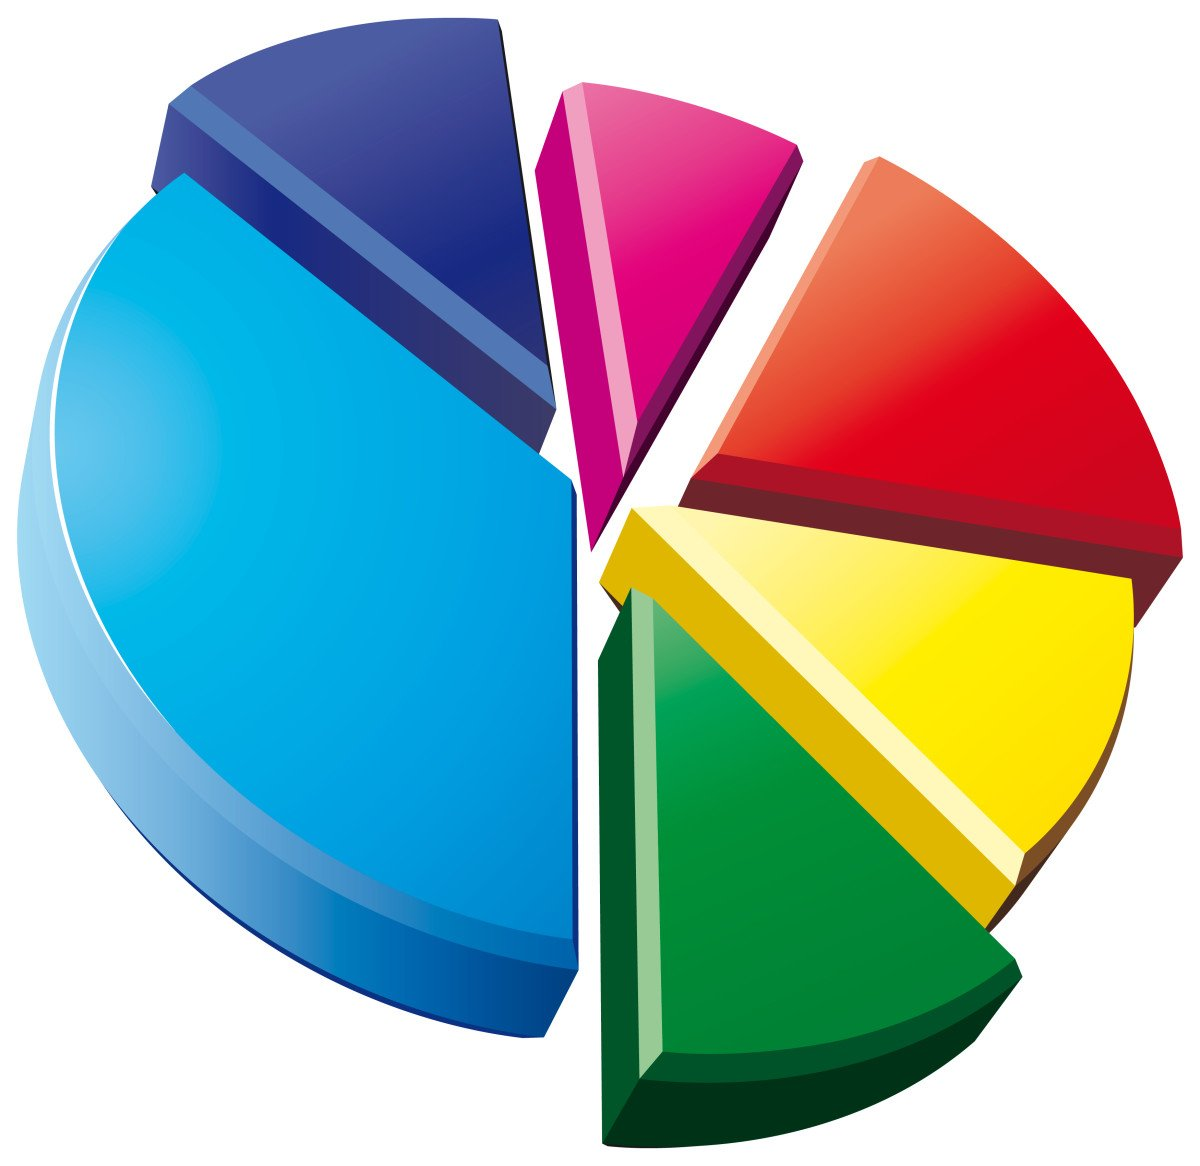 SEO Ranking Factors Pie Chart